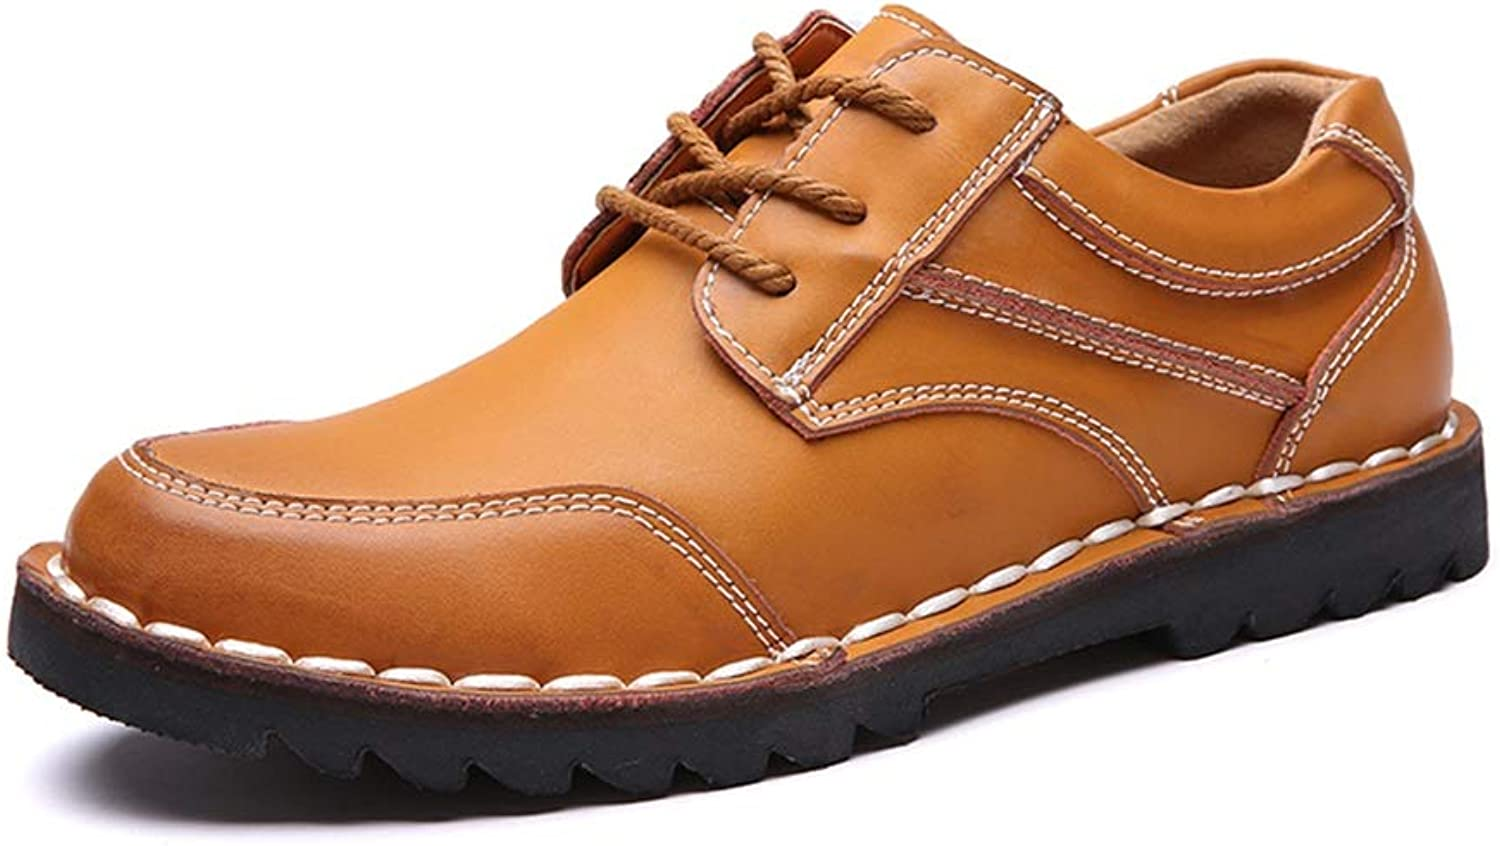 Easy Go Shopping Work Boots for Men Low Top shoes Leather Lace up Style Strong Anti Slip Outsole Riding Hiking Cricket shoes (color   Yellow, Size   8 UK)